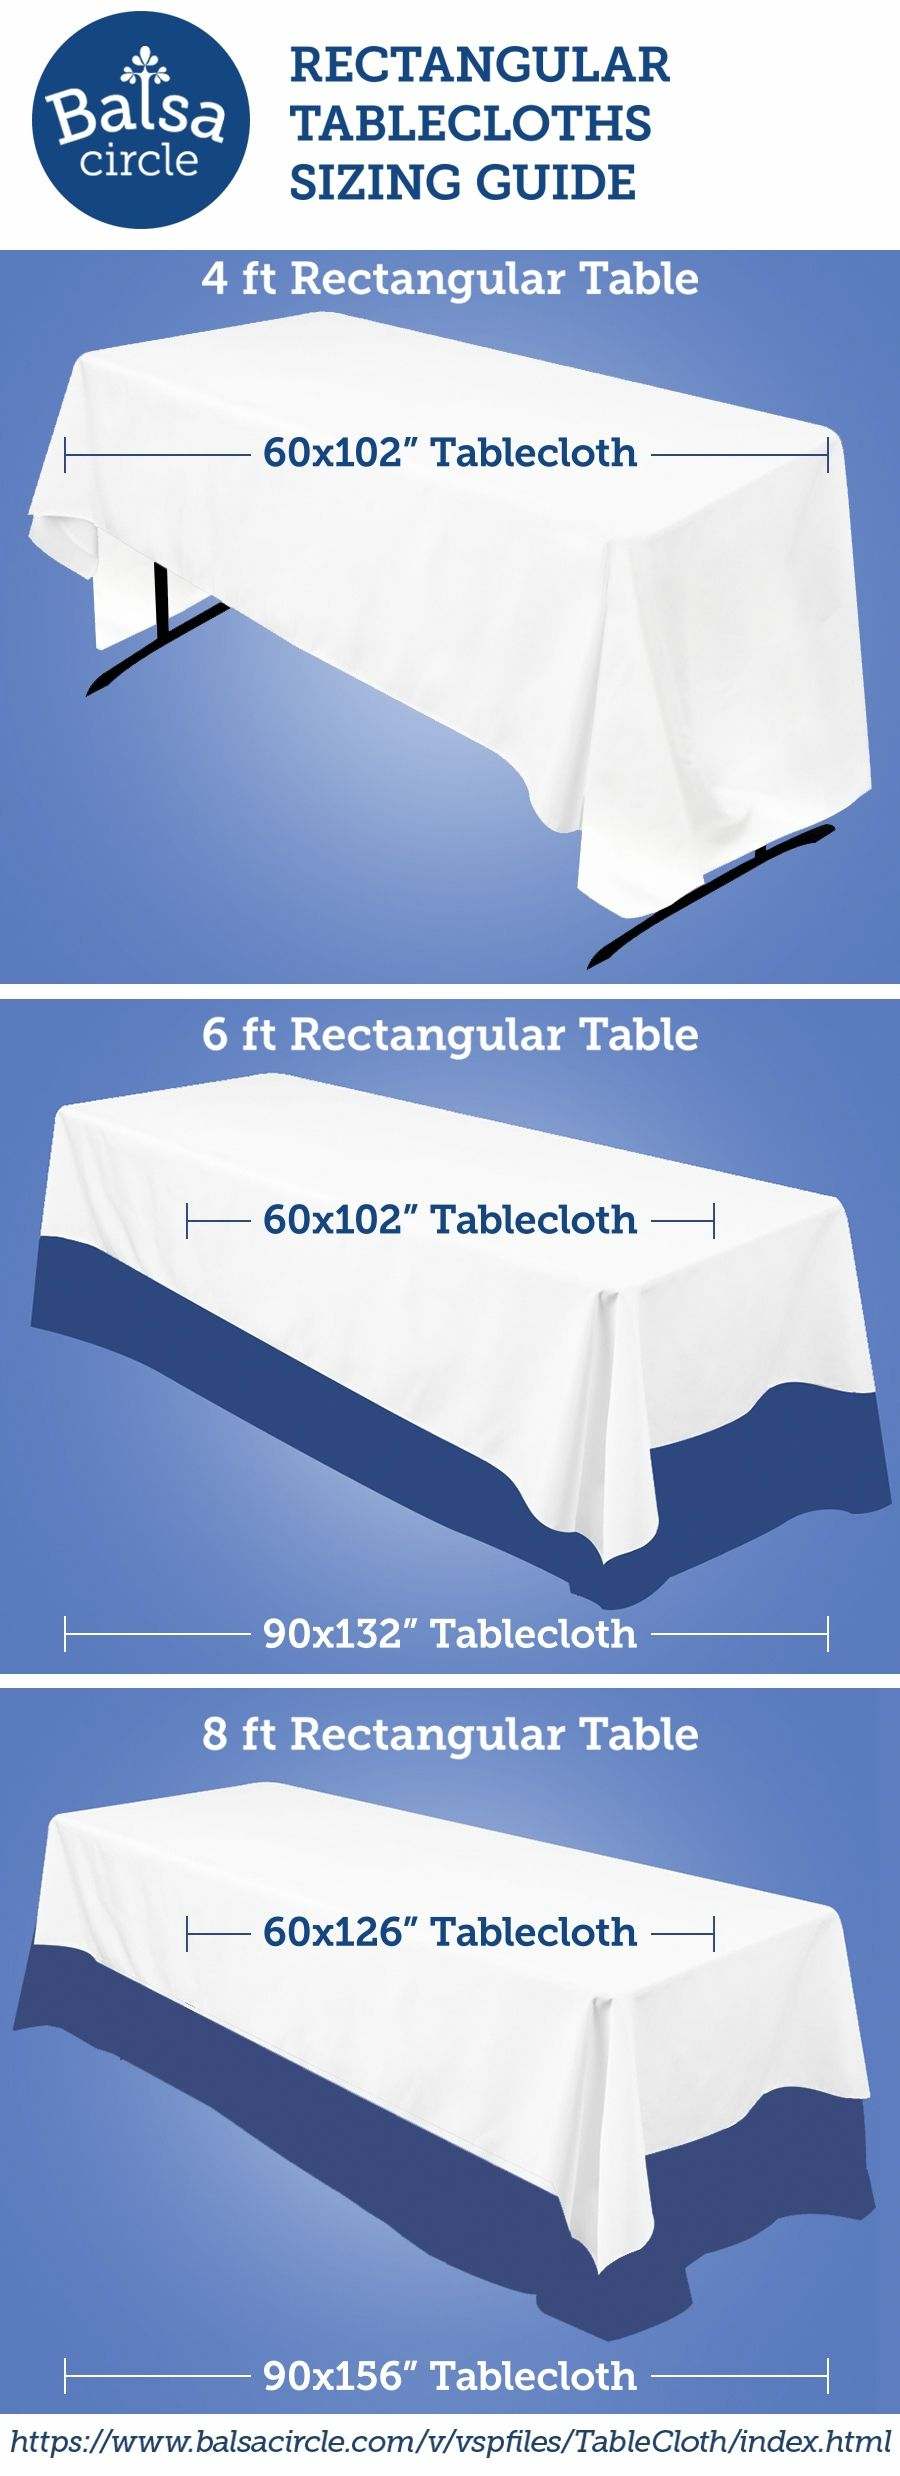 6 Foot Round Table Linen In 2019 Wedding Table Linens